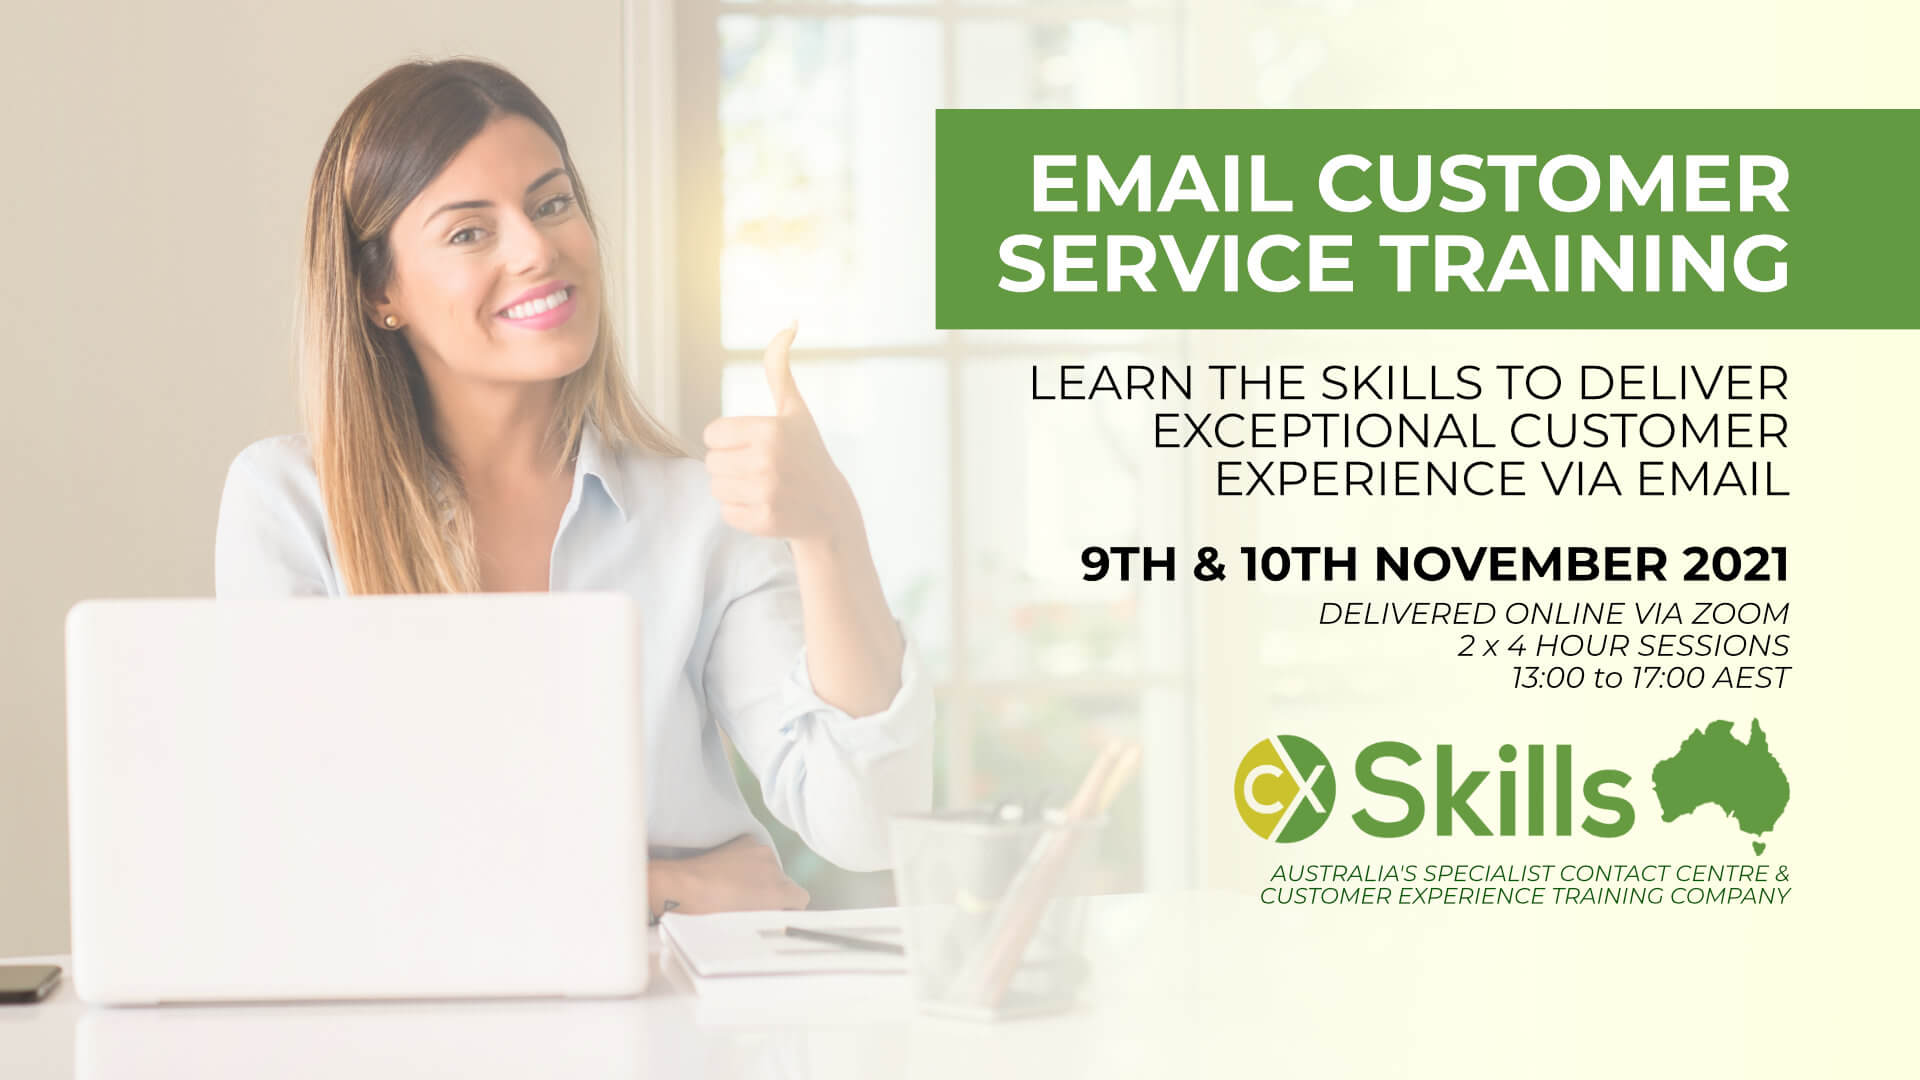 Email Customer Service training November 2021